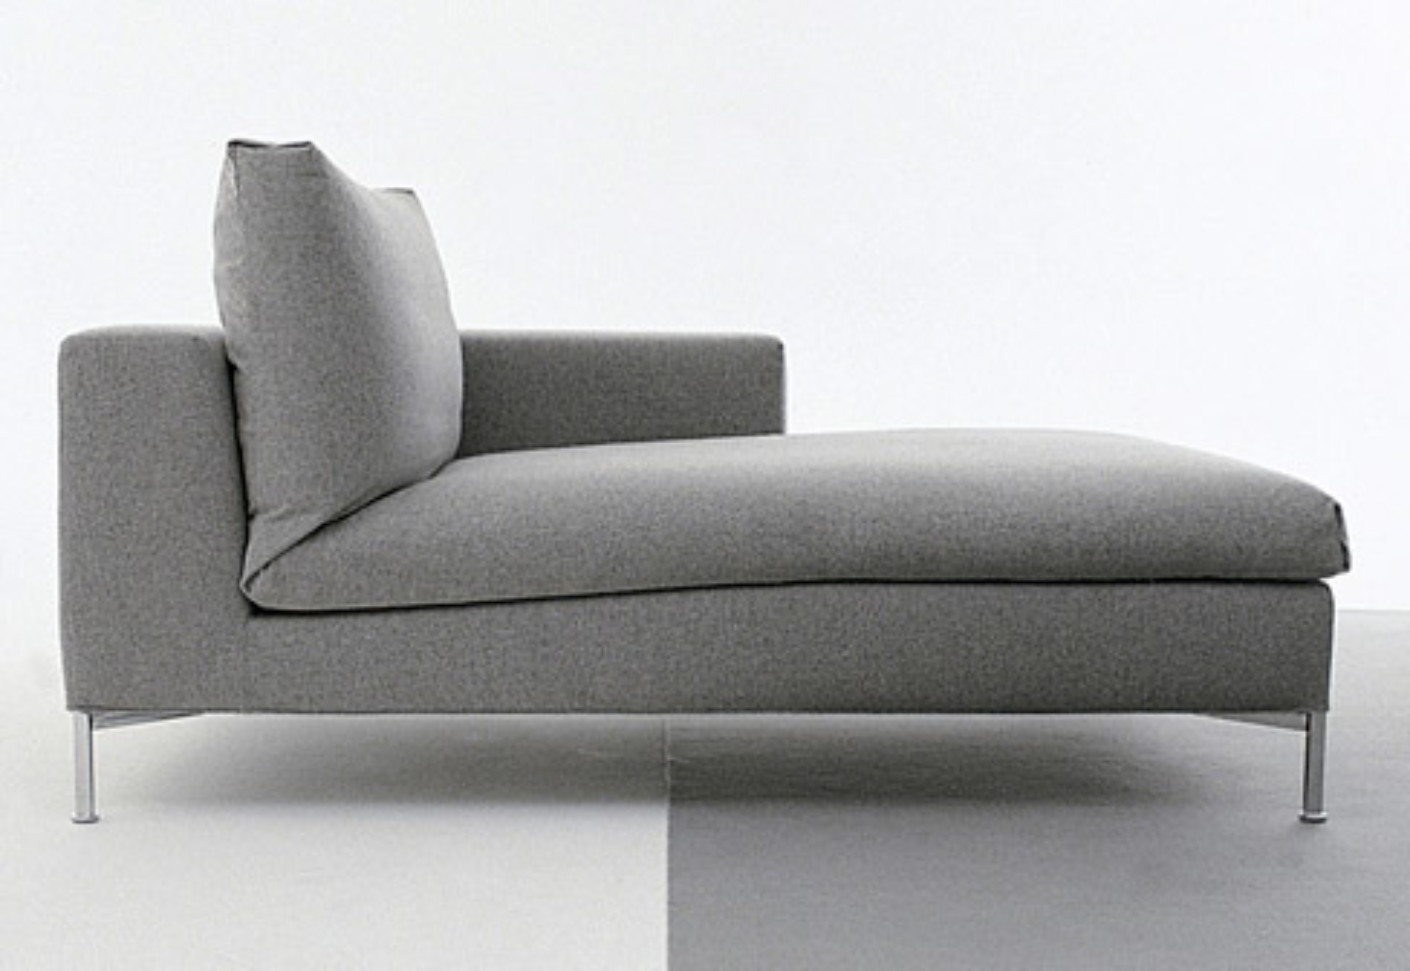 Box Chaise Longue By Living Divani Stylepark